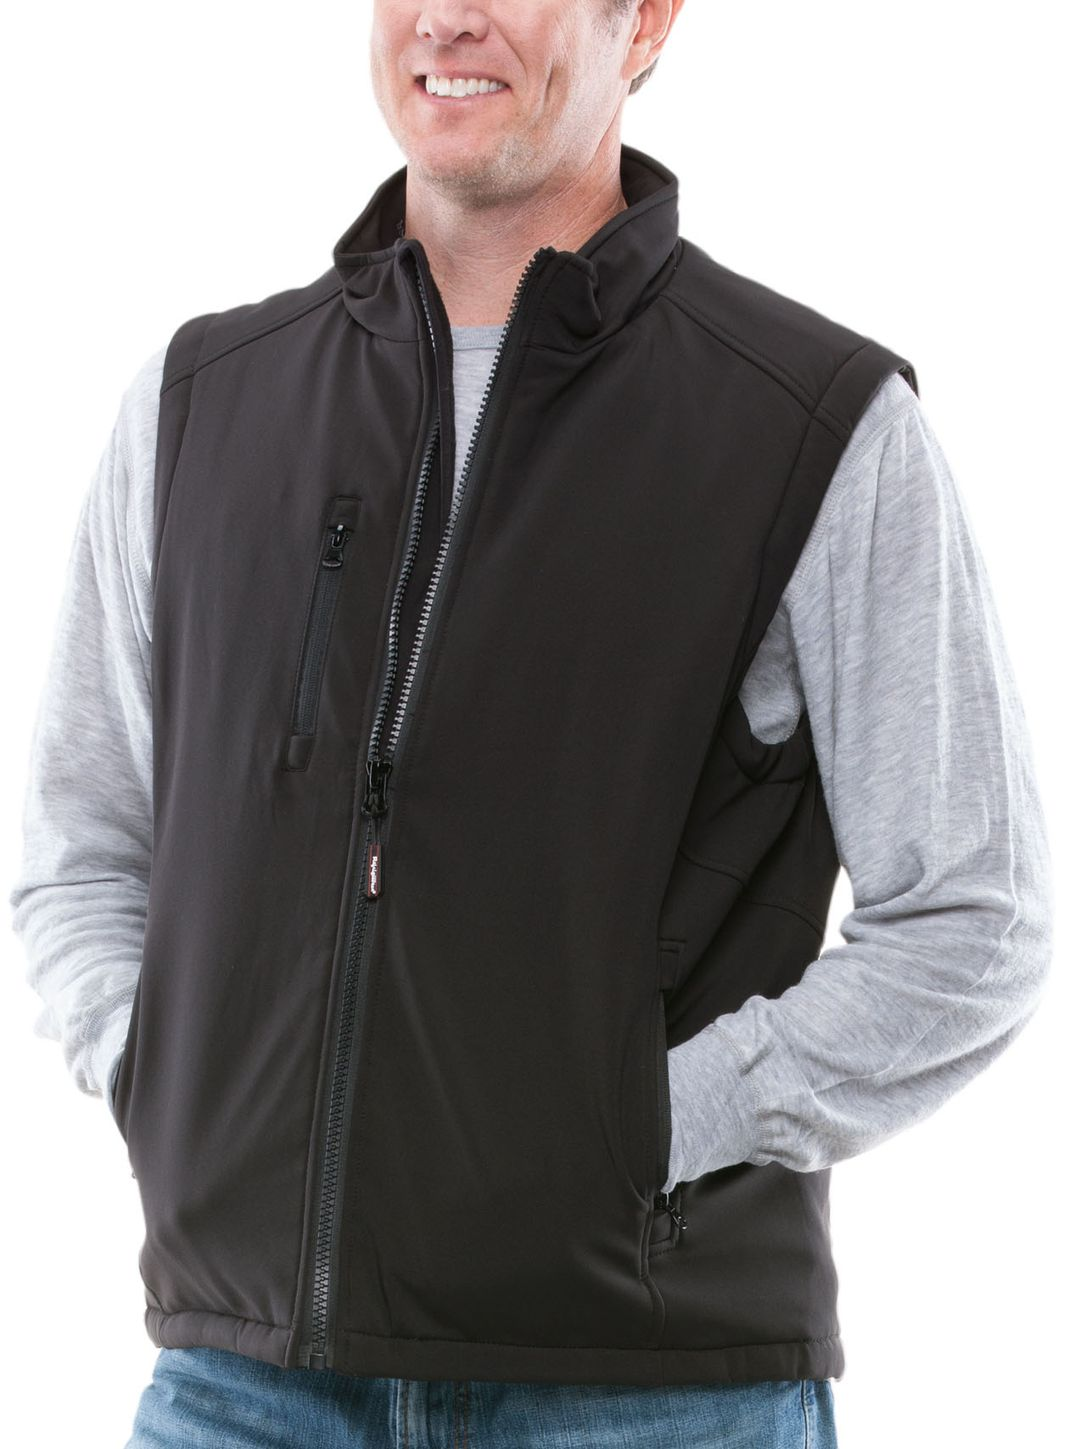 RefrigiWear 0494 Cold Weather Softshell Vest Example